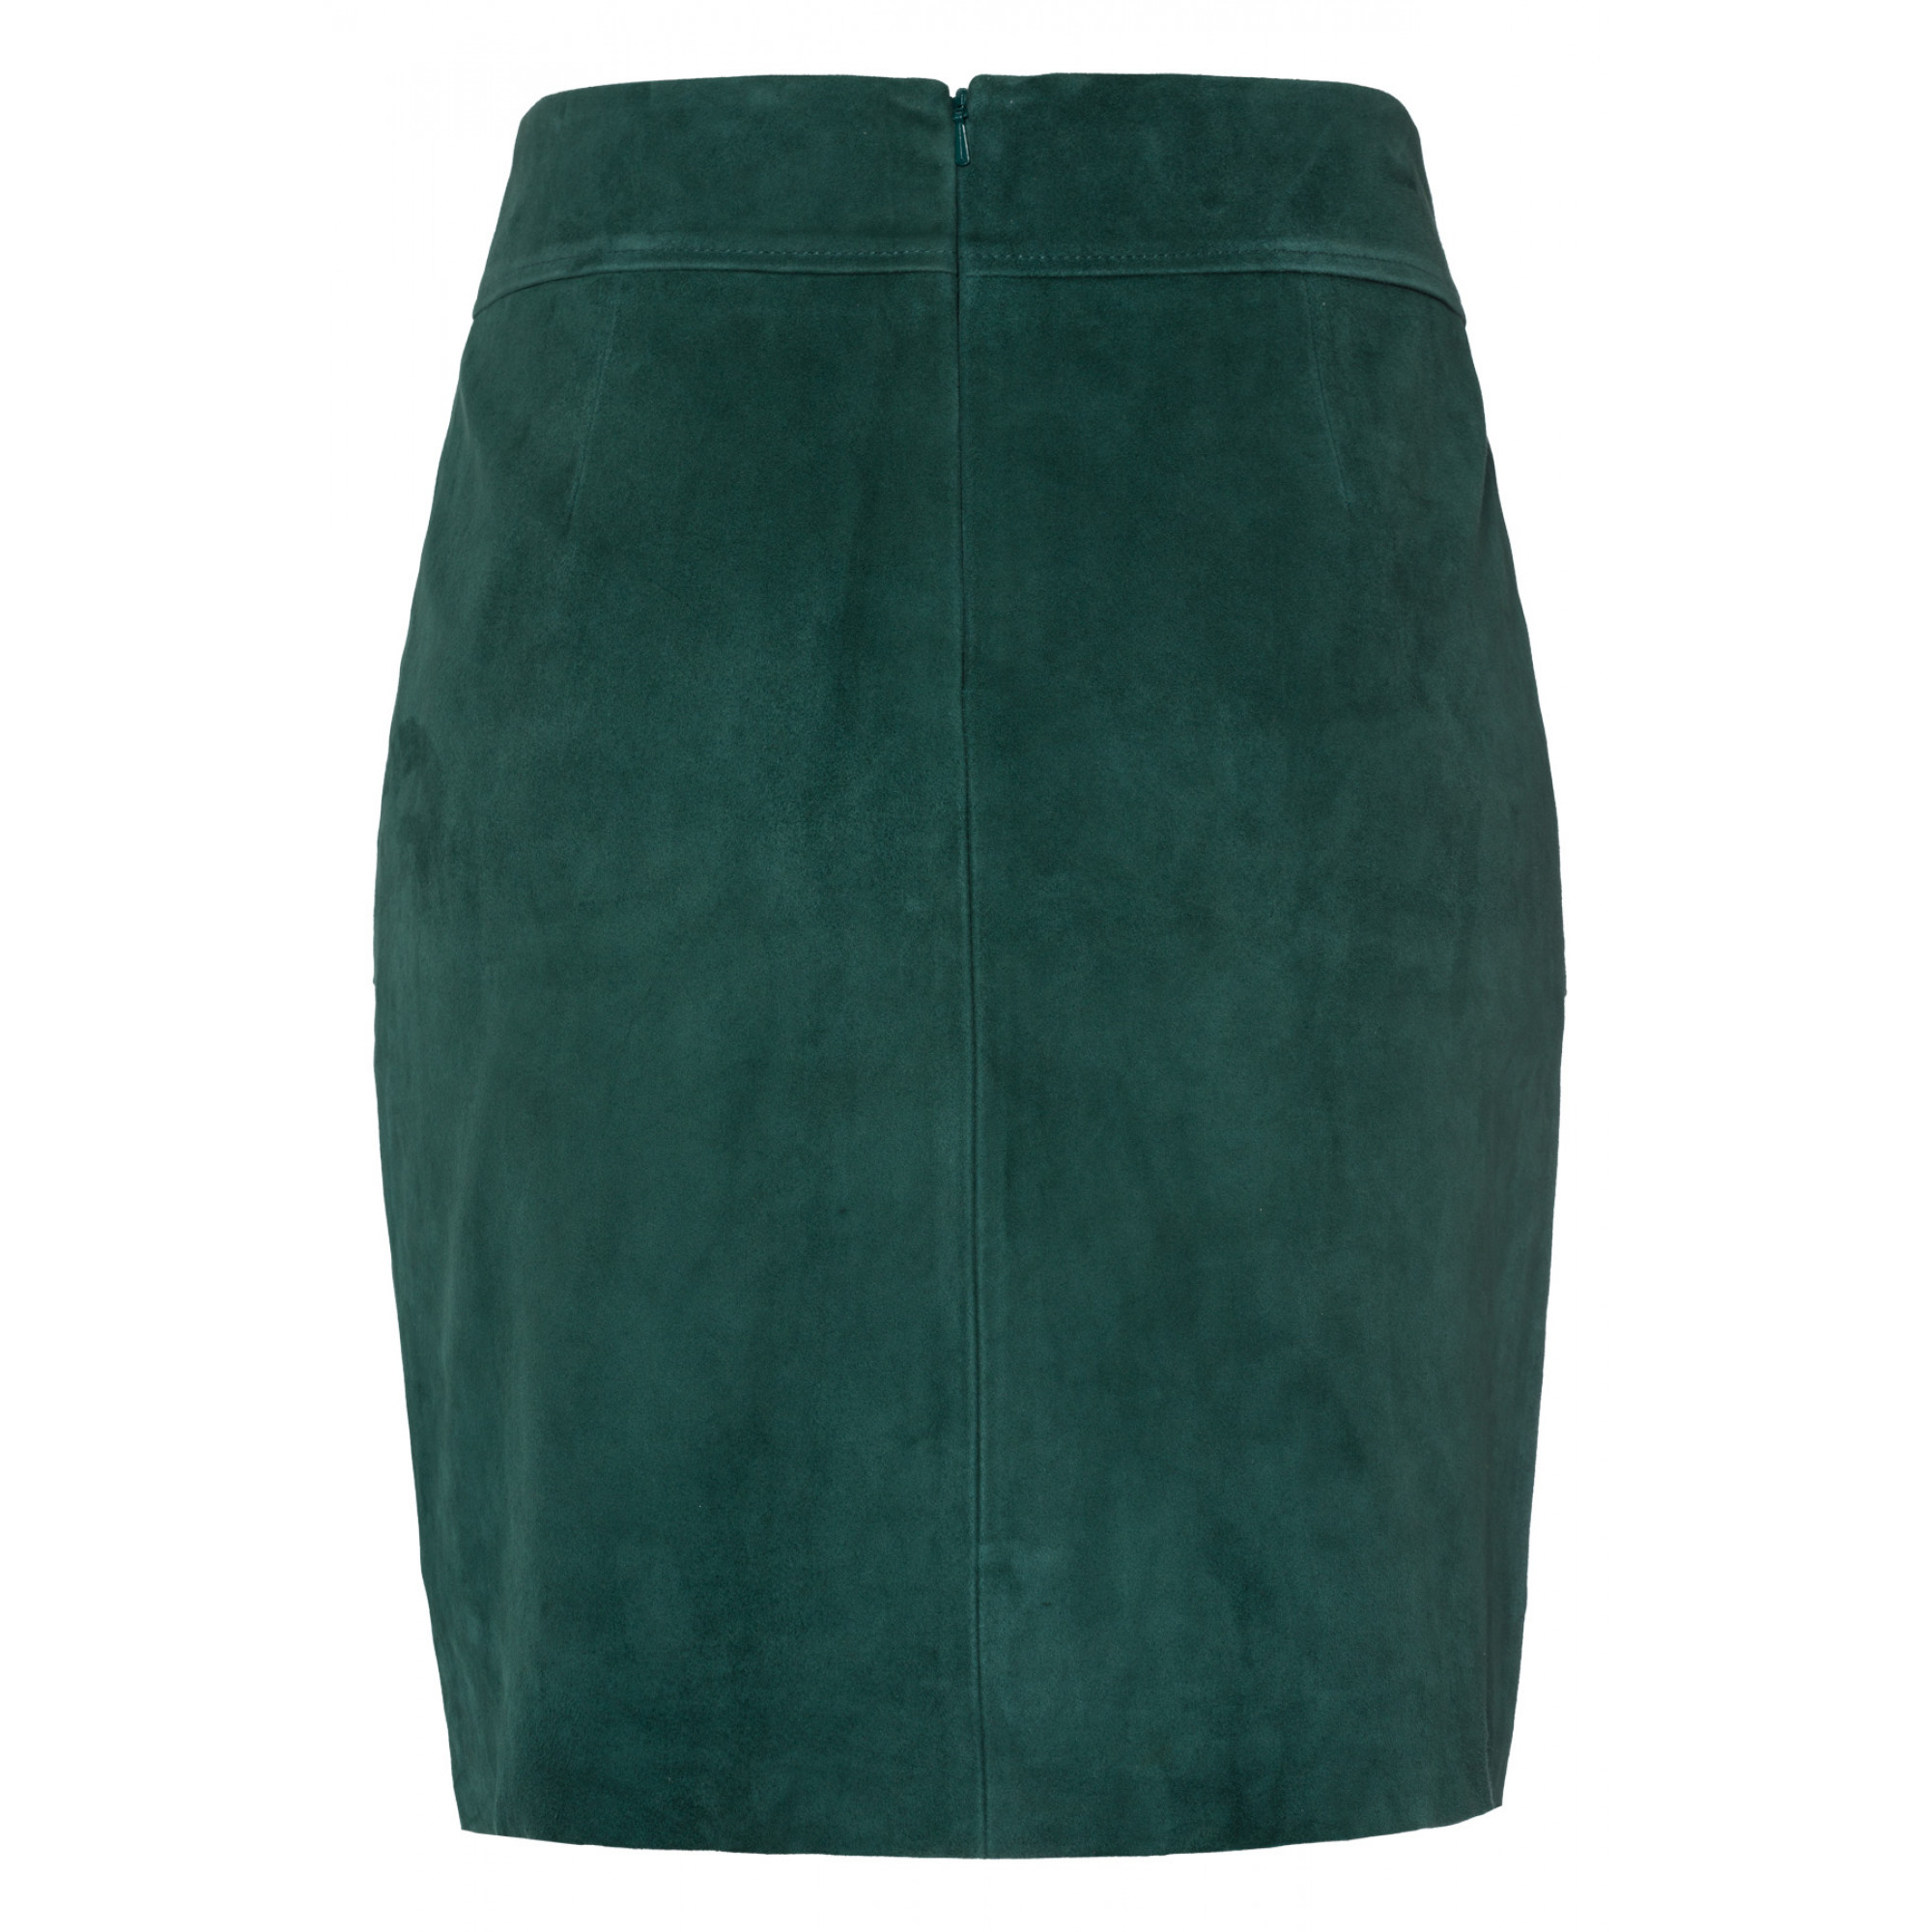 Velourslederrock, emerald green 91098002-0655 2